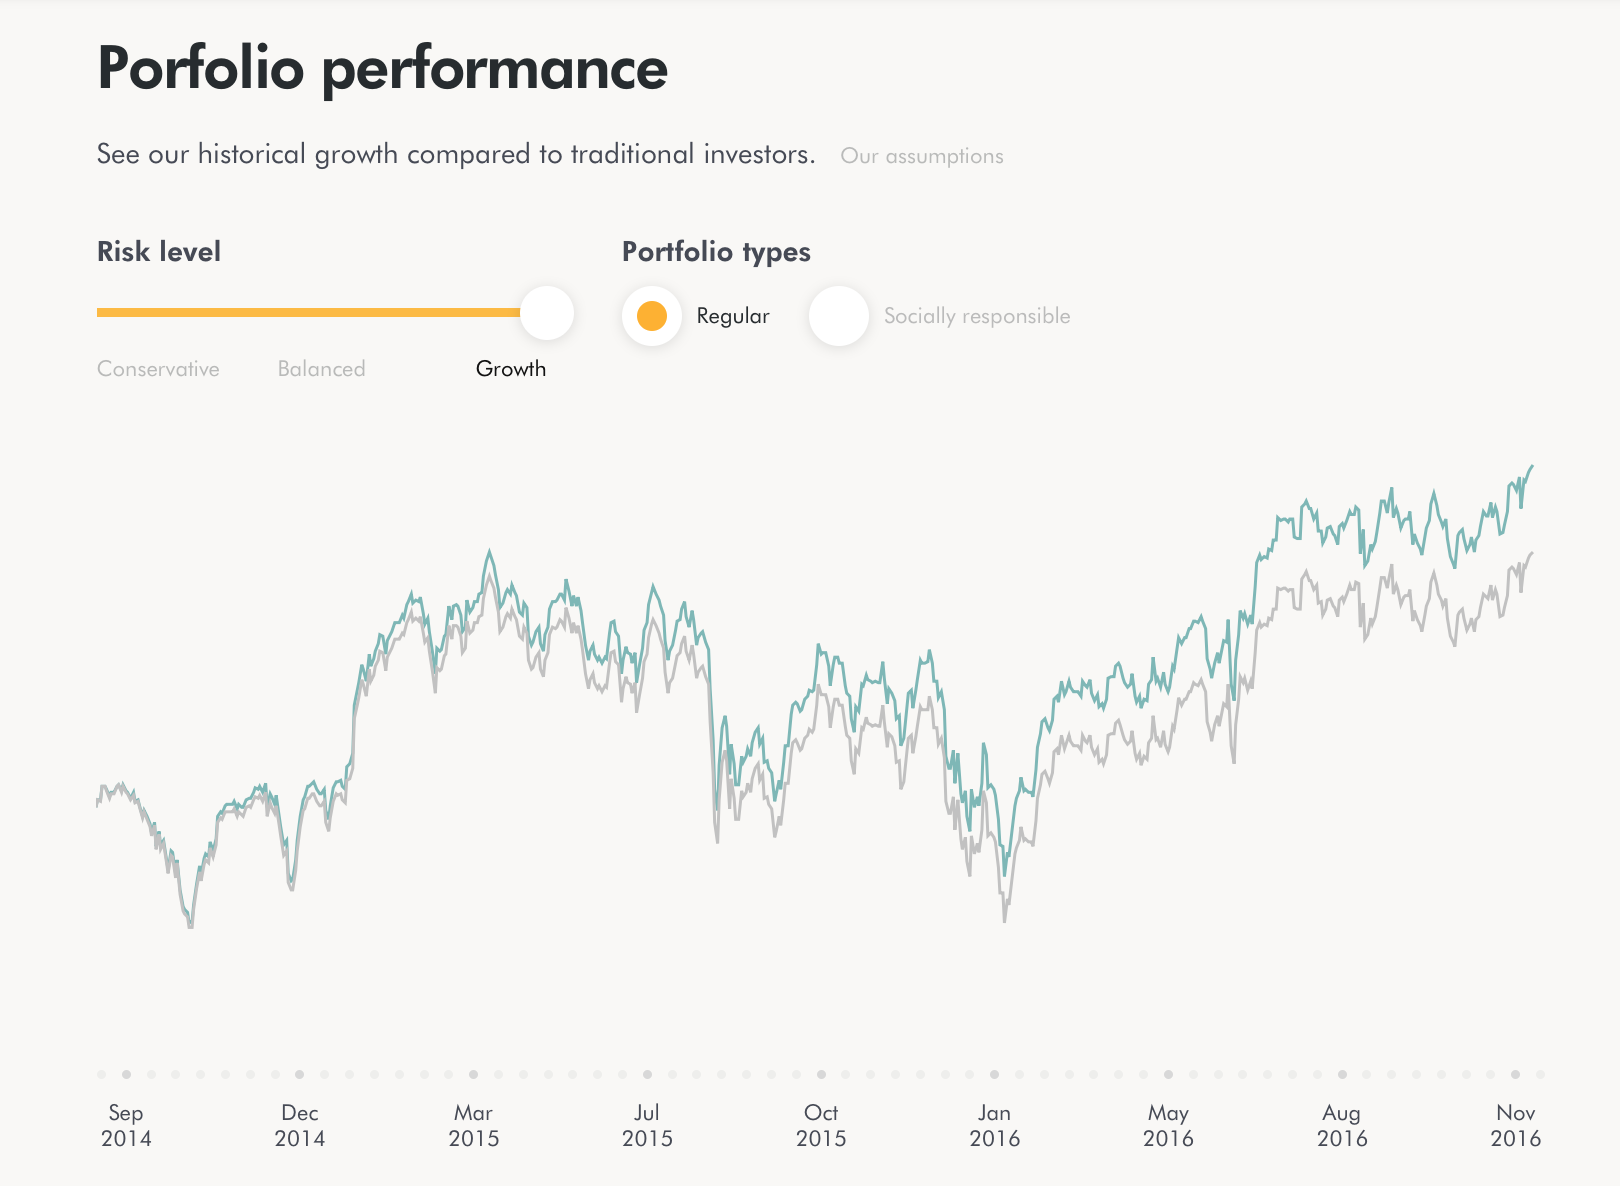 """My ROBO's historical returns versus a """"traditional investor"""". Notice the ROBO consistently outperforms the """"traditional investor"""". There's a reason which I discuss below. PS-ROBO forgets to spell check sometimes :)"""